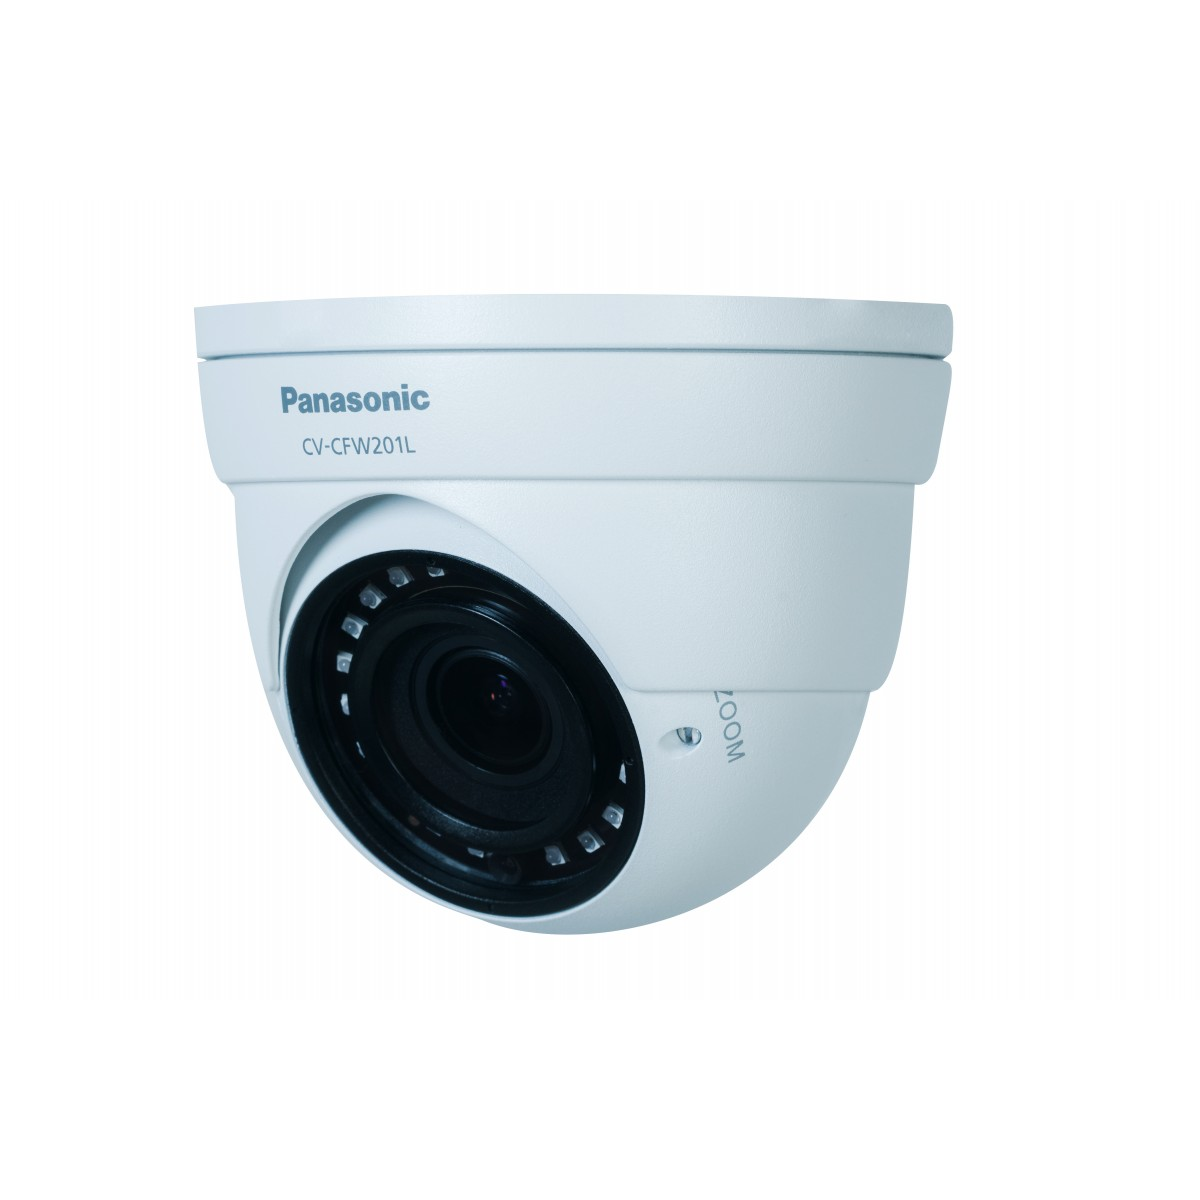 Camera Panasonic C-SERIES  CV-CFW201L